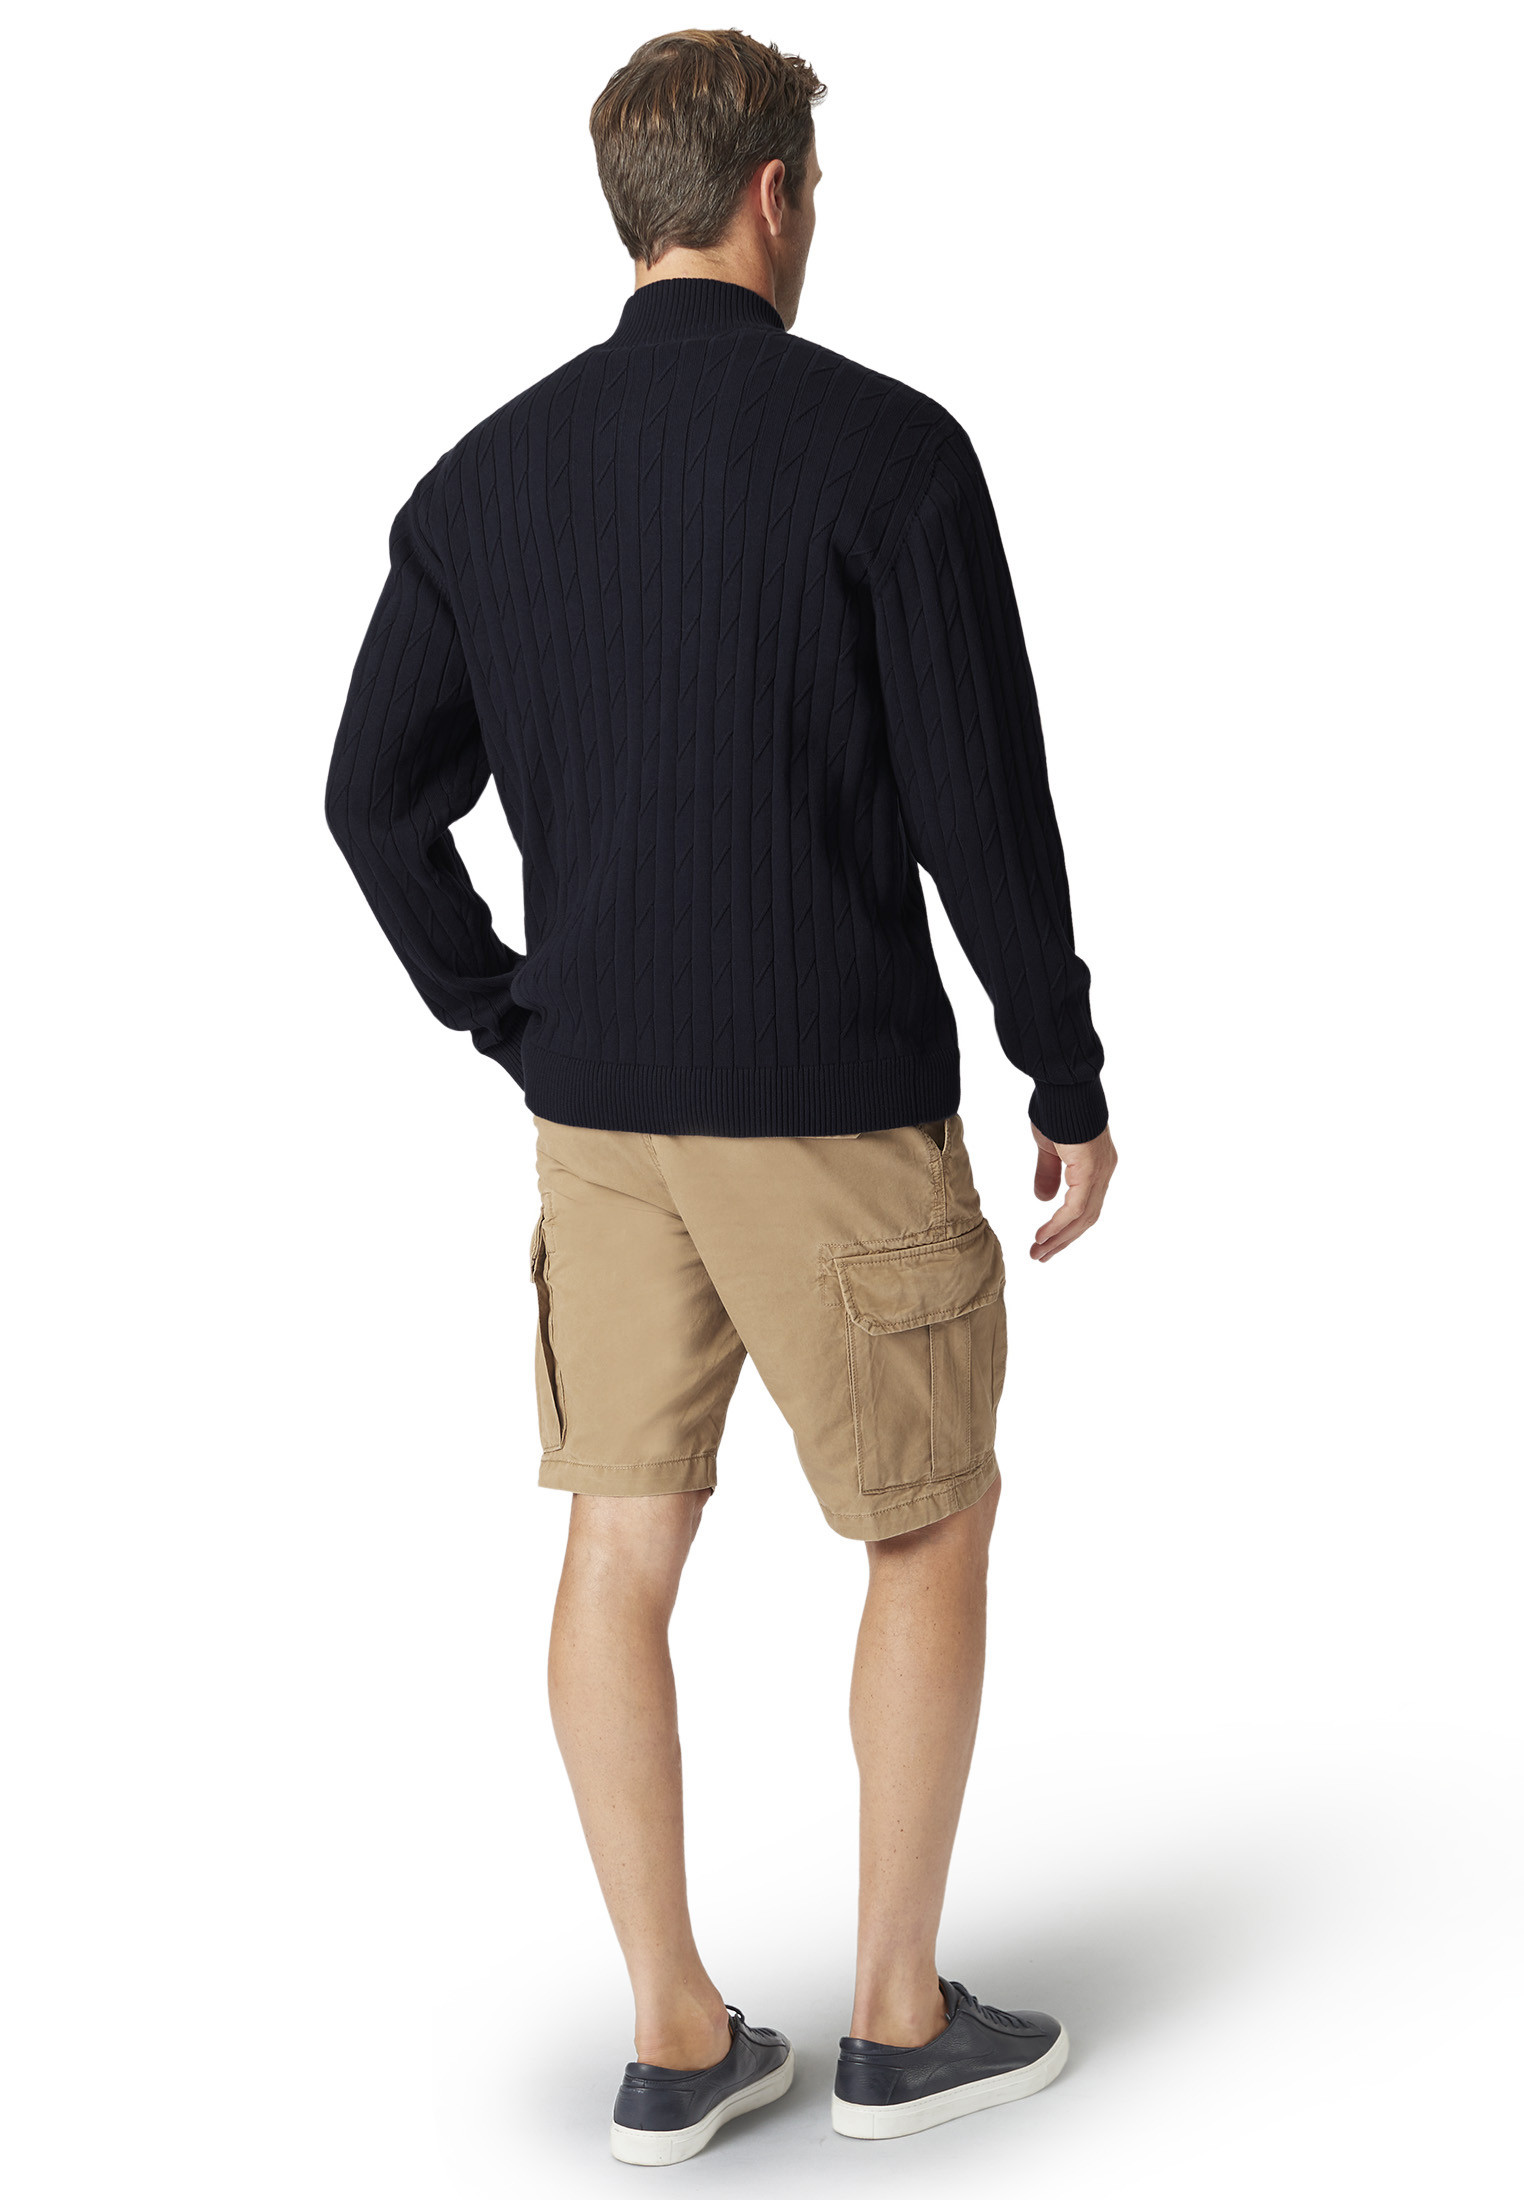 Byford Navy Cable Knit Zip Neck Jumper